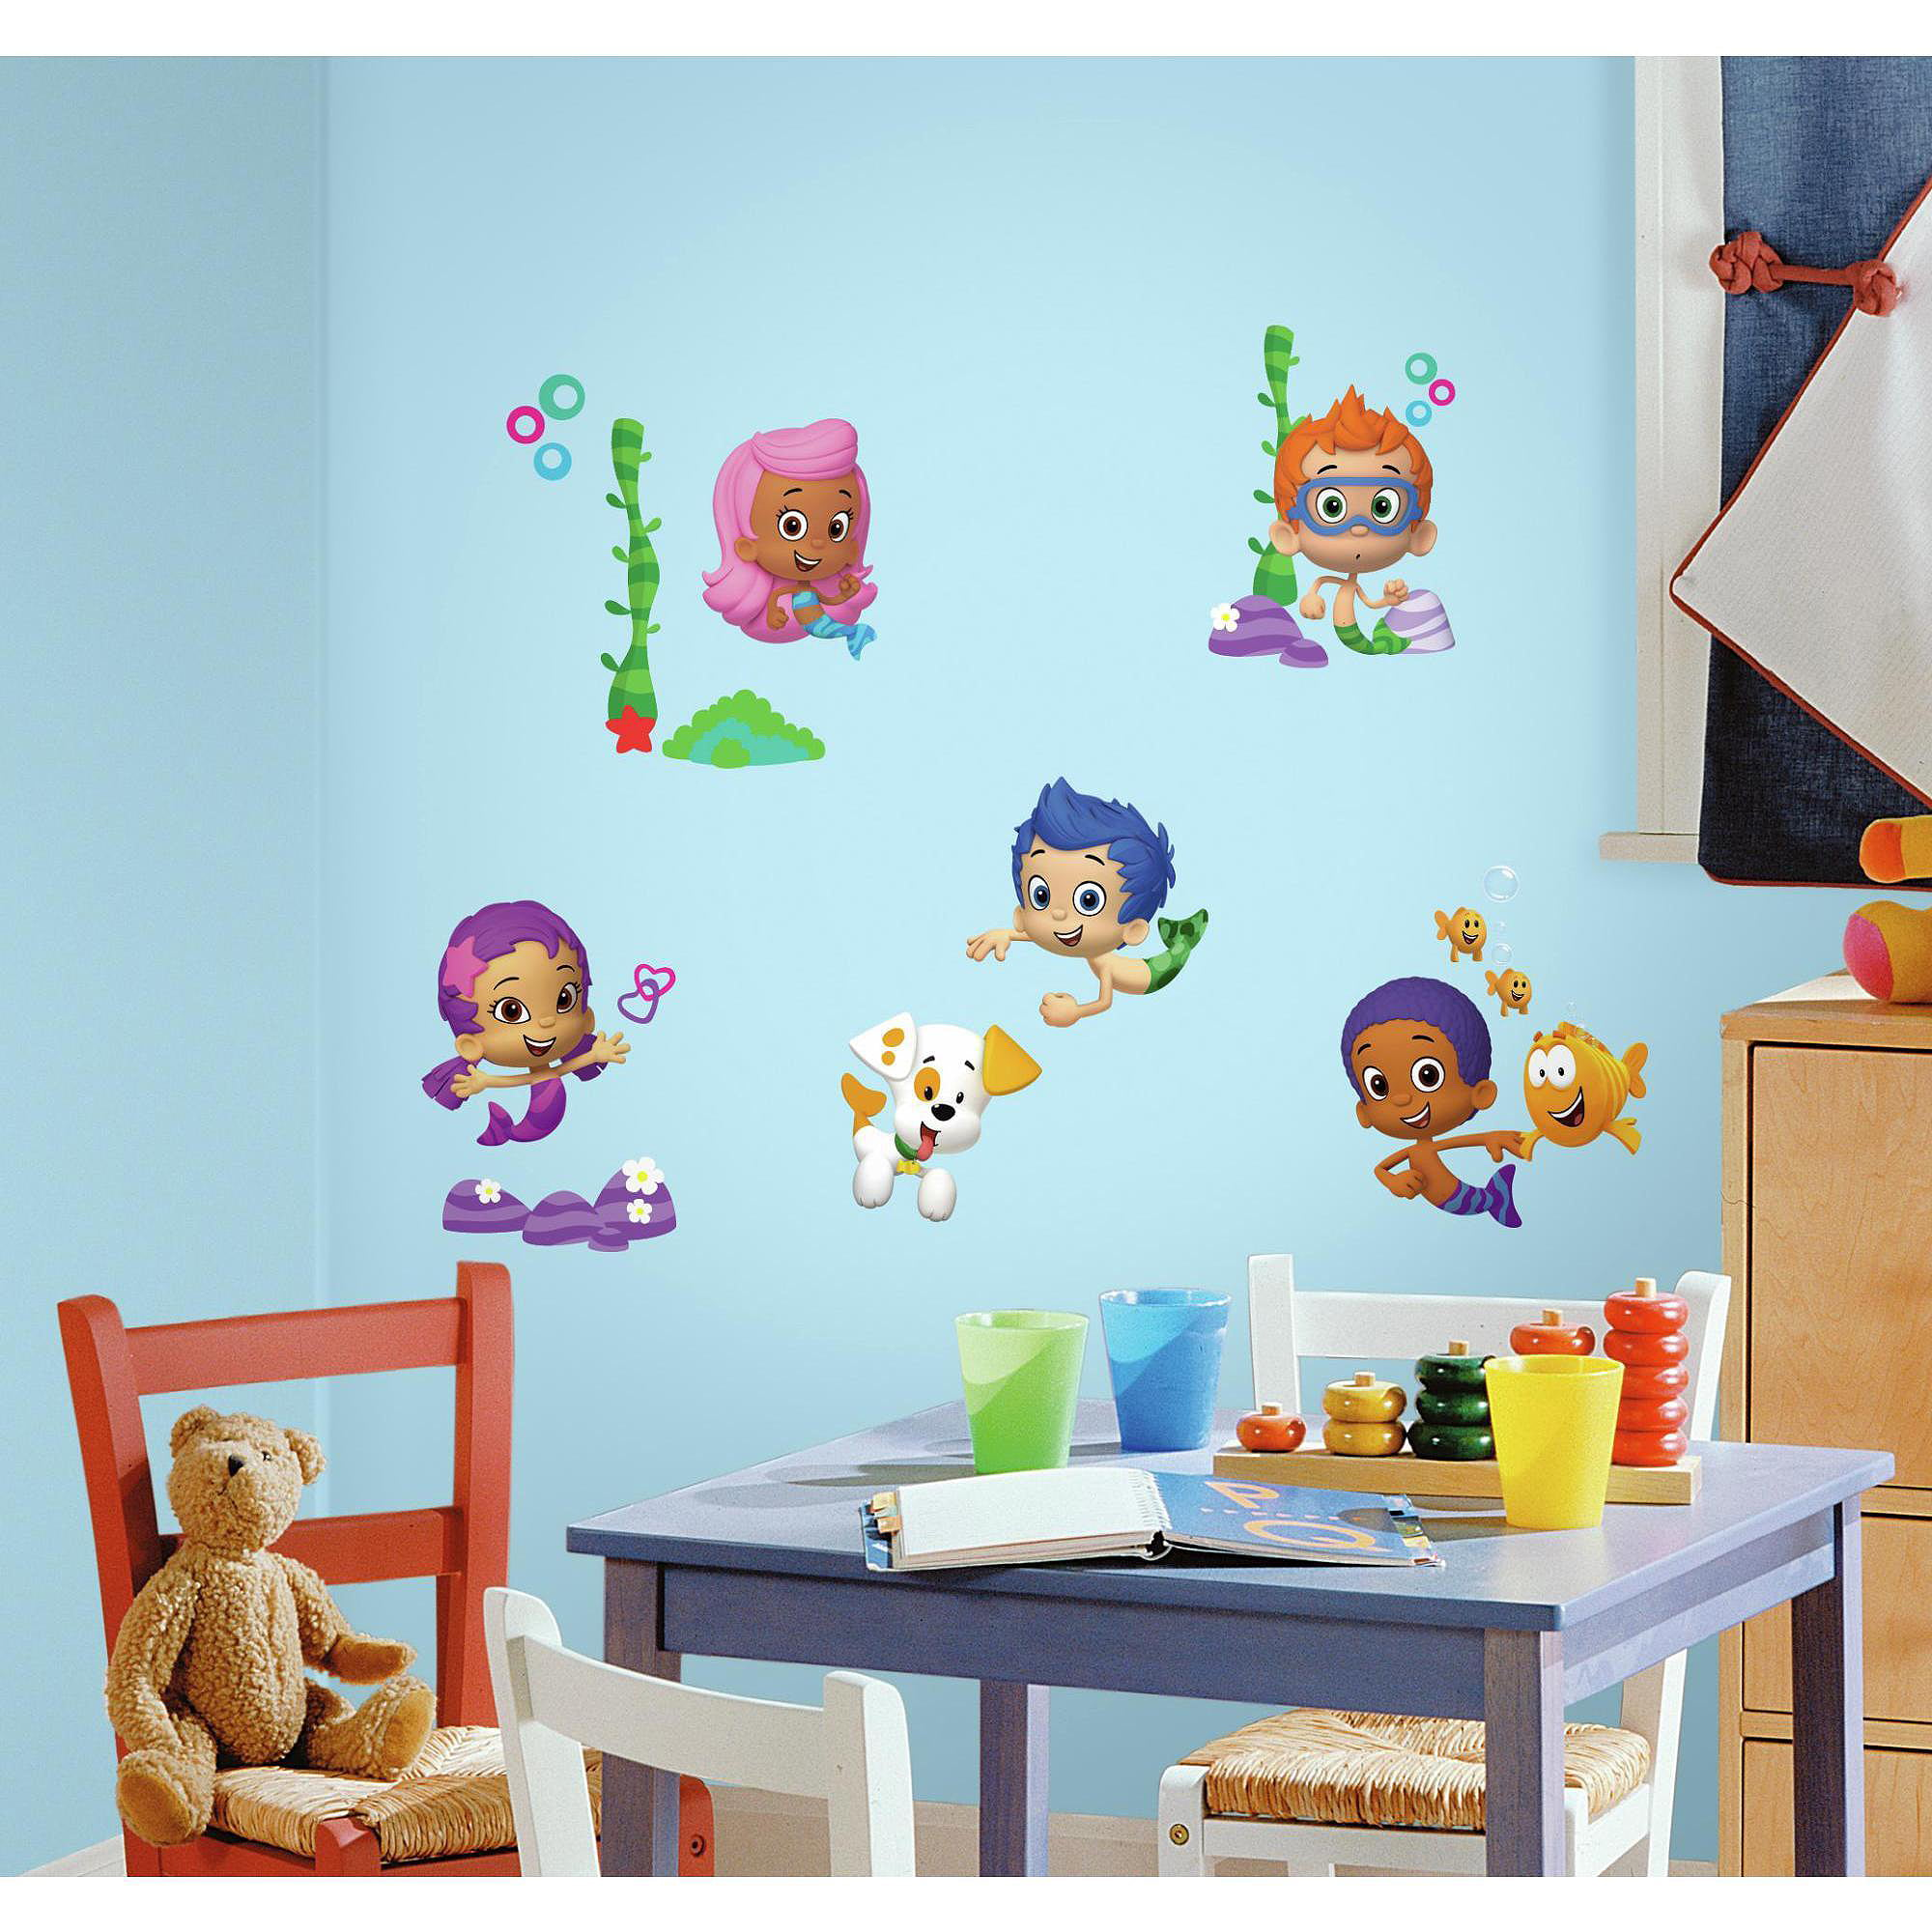 Lovely Bubble Guppies Wall Decal Decorations   Walmart.com